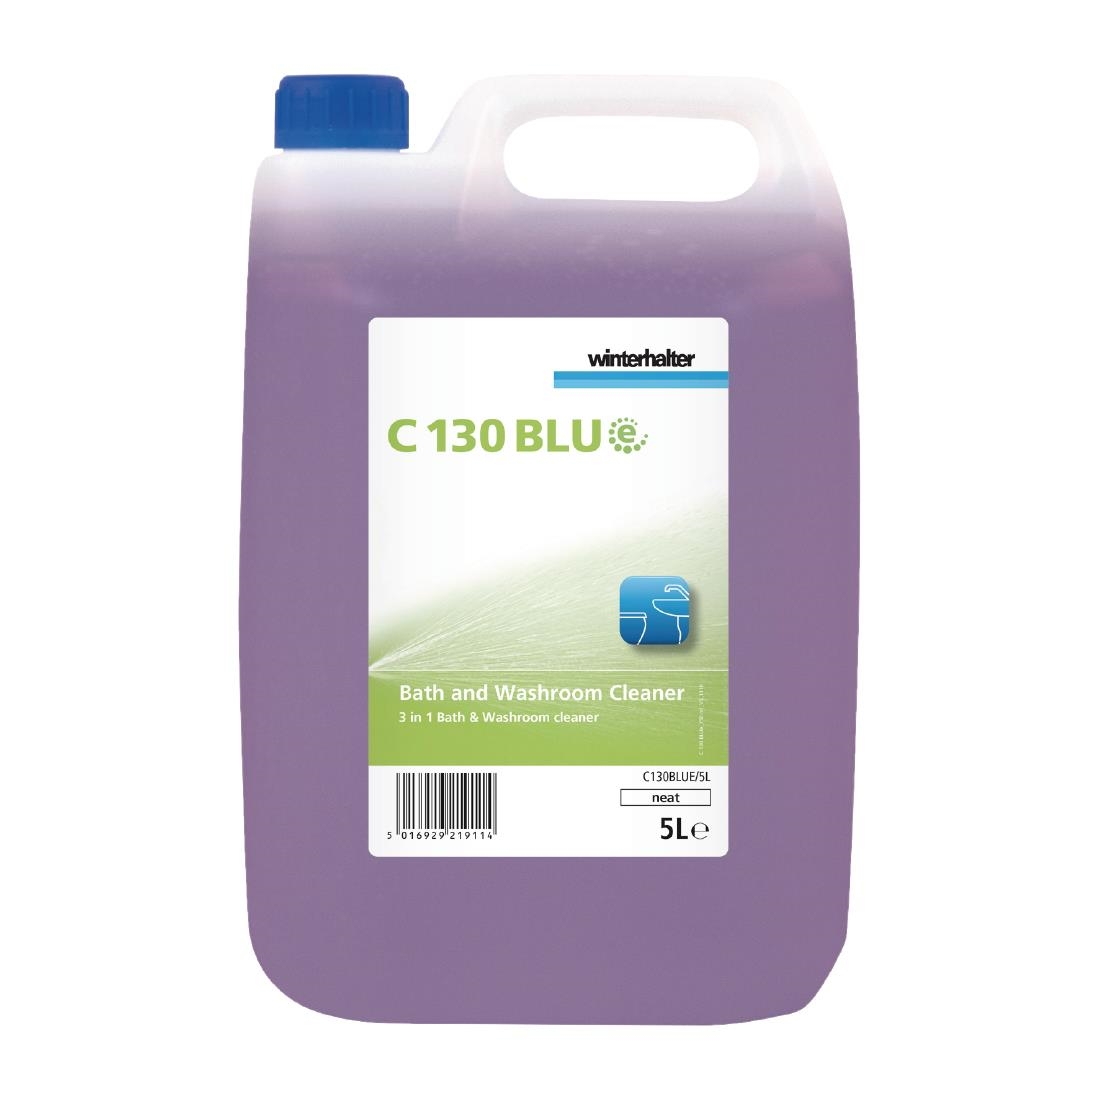 Winterhalter C130 BLUe Bath and Washroom Cleaner Ready To Use 5Ltr (2 Pack)